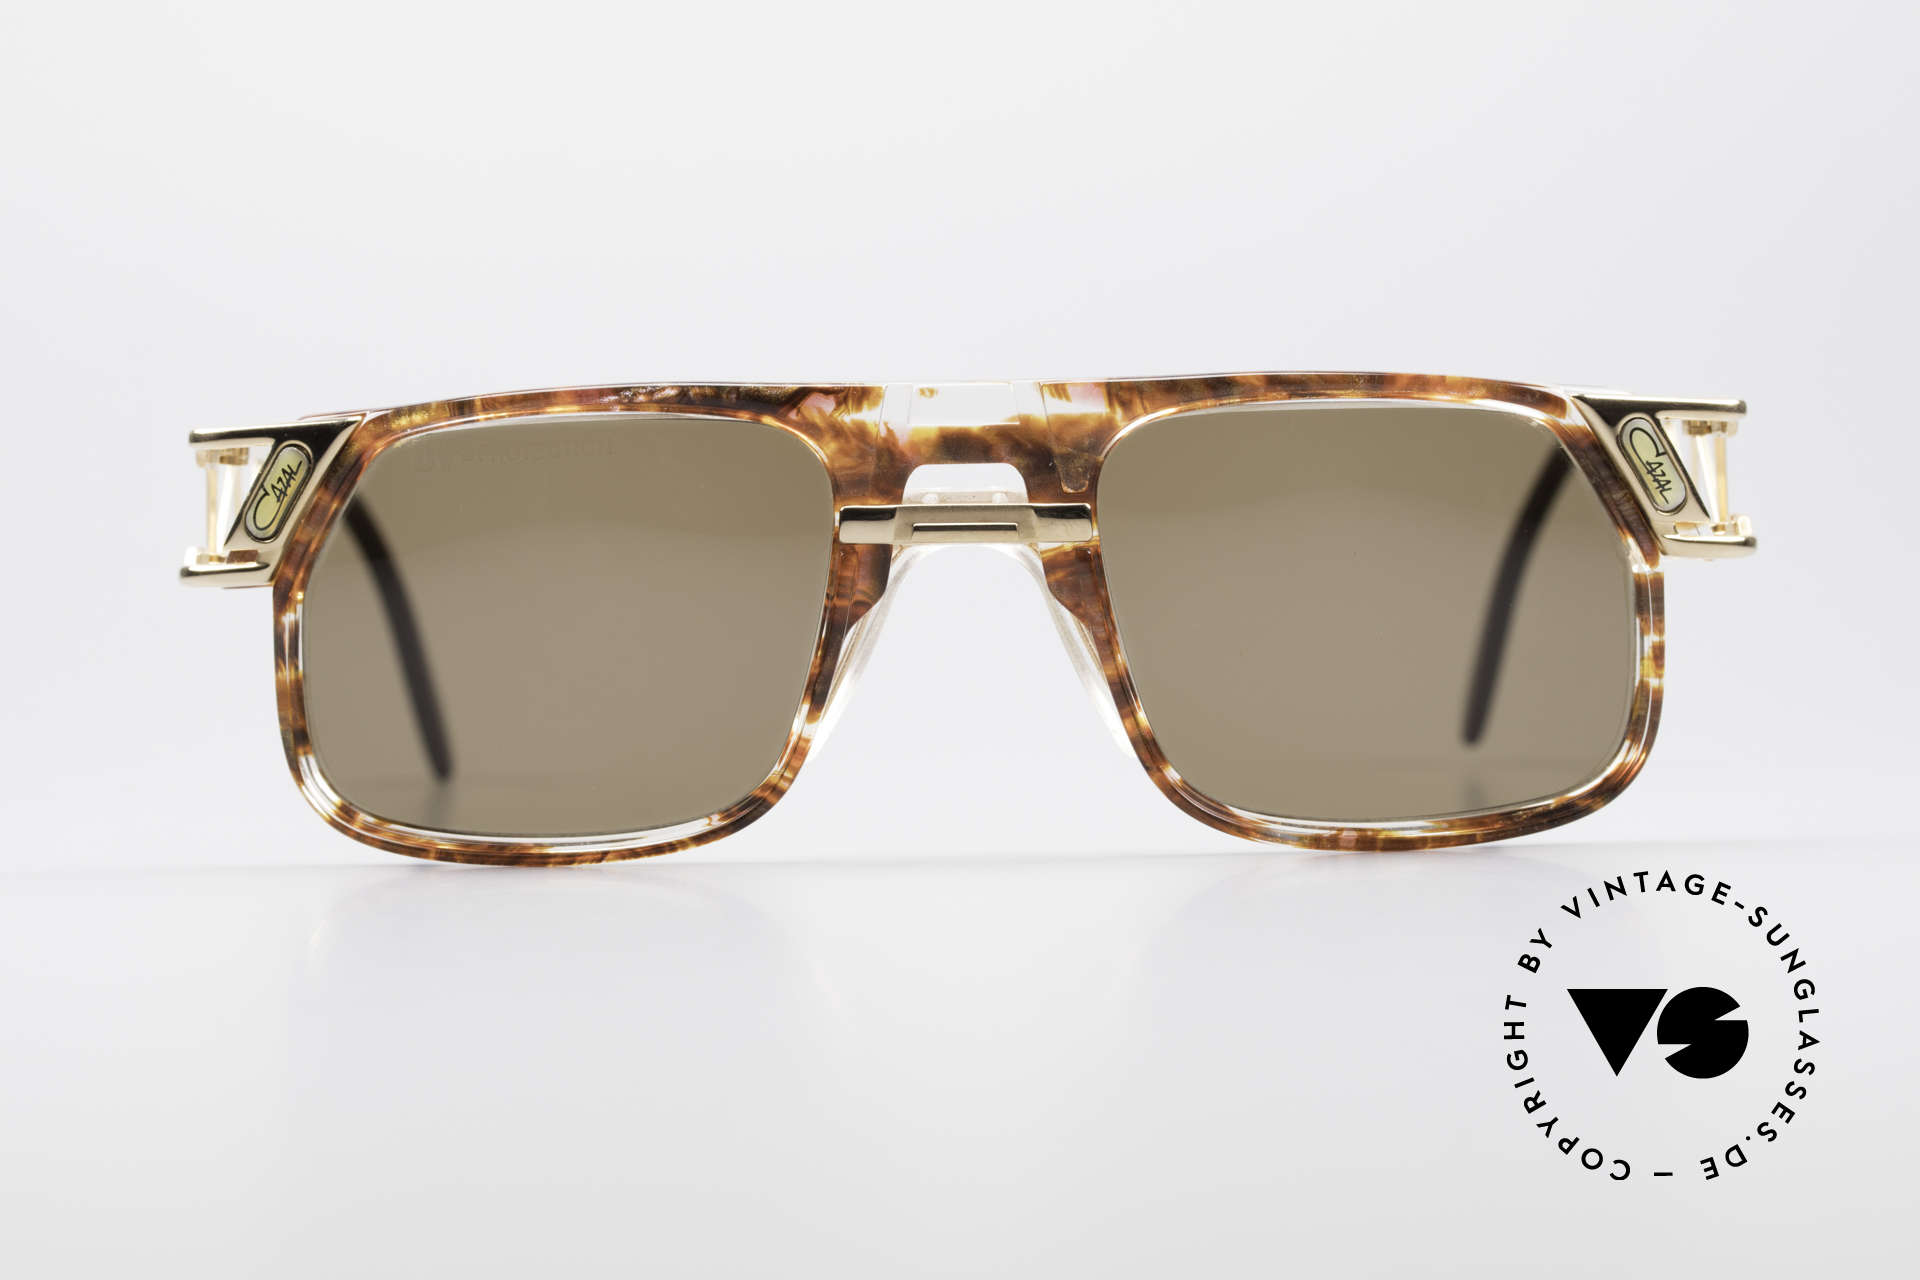 Cazal 876 True 90's No Retro Sunglasses, made by design icon / style guru CAri ZALloni (CAZAL), Made for Men and Women